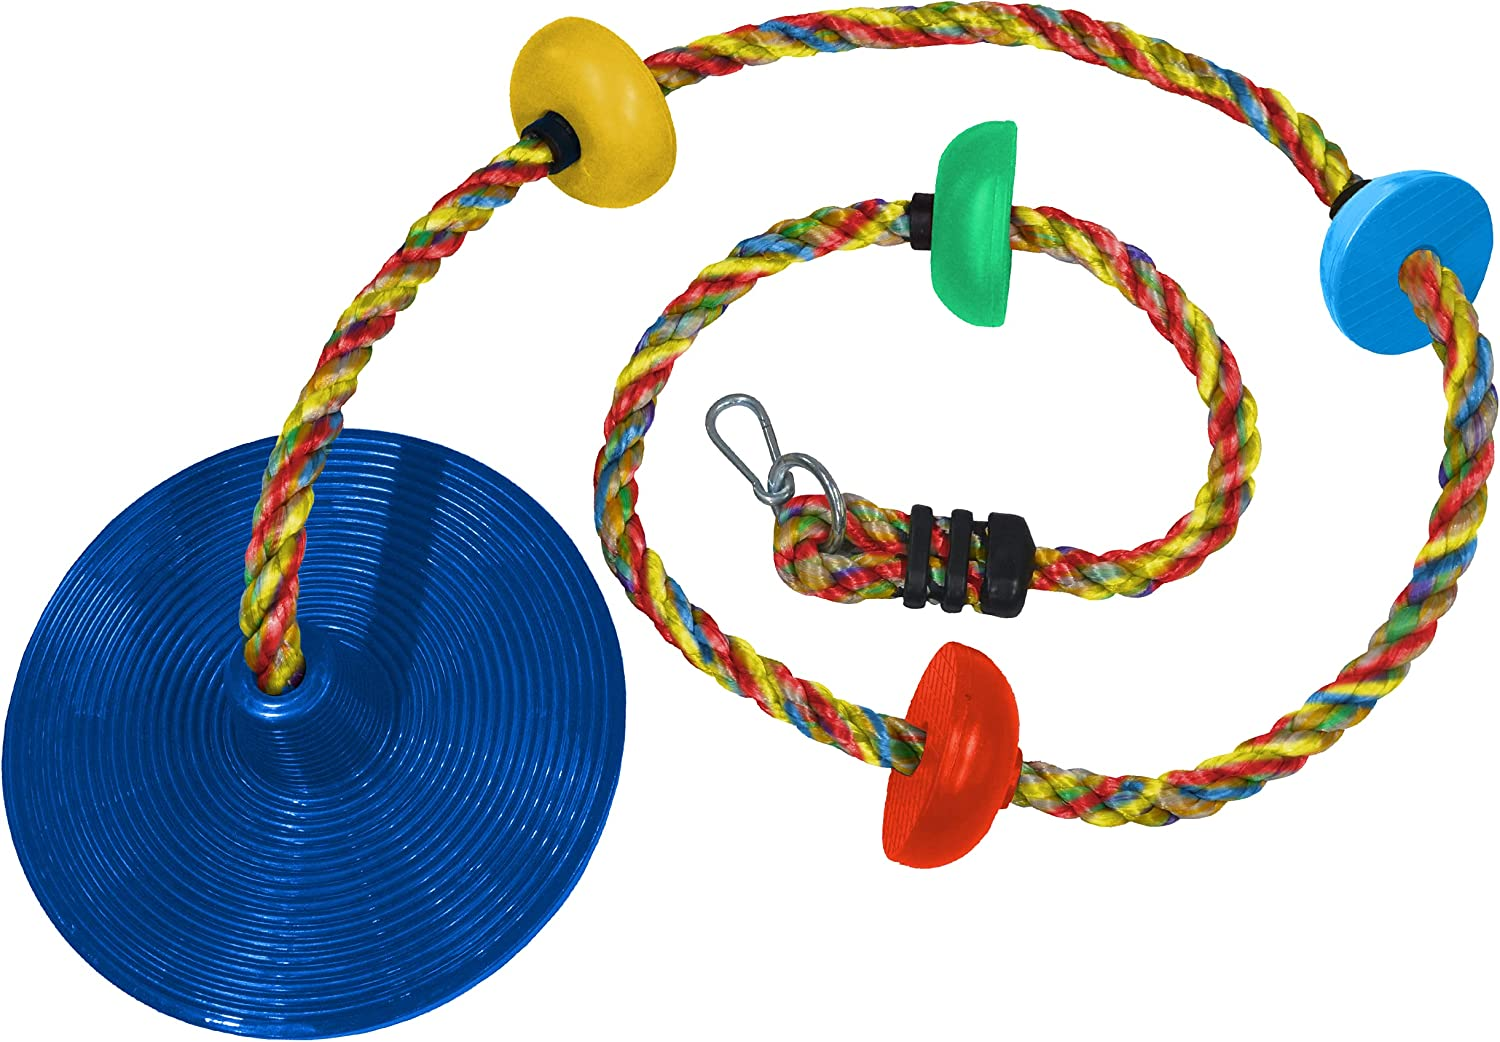 Jungle 25% OFF Gym Kingdom Tree Swing Multicolor Rope Fashion with Plat Climbing